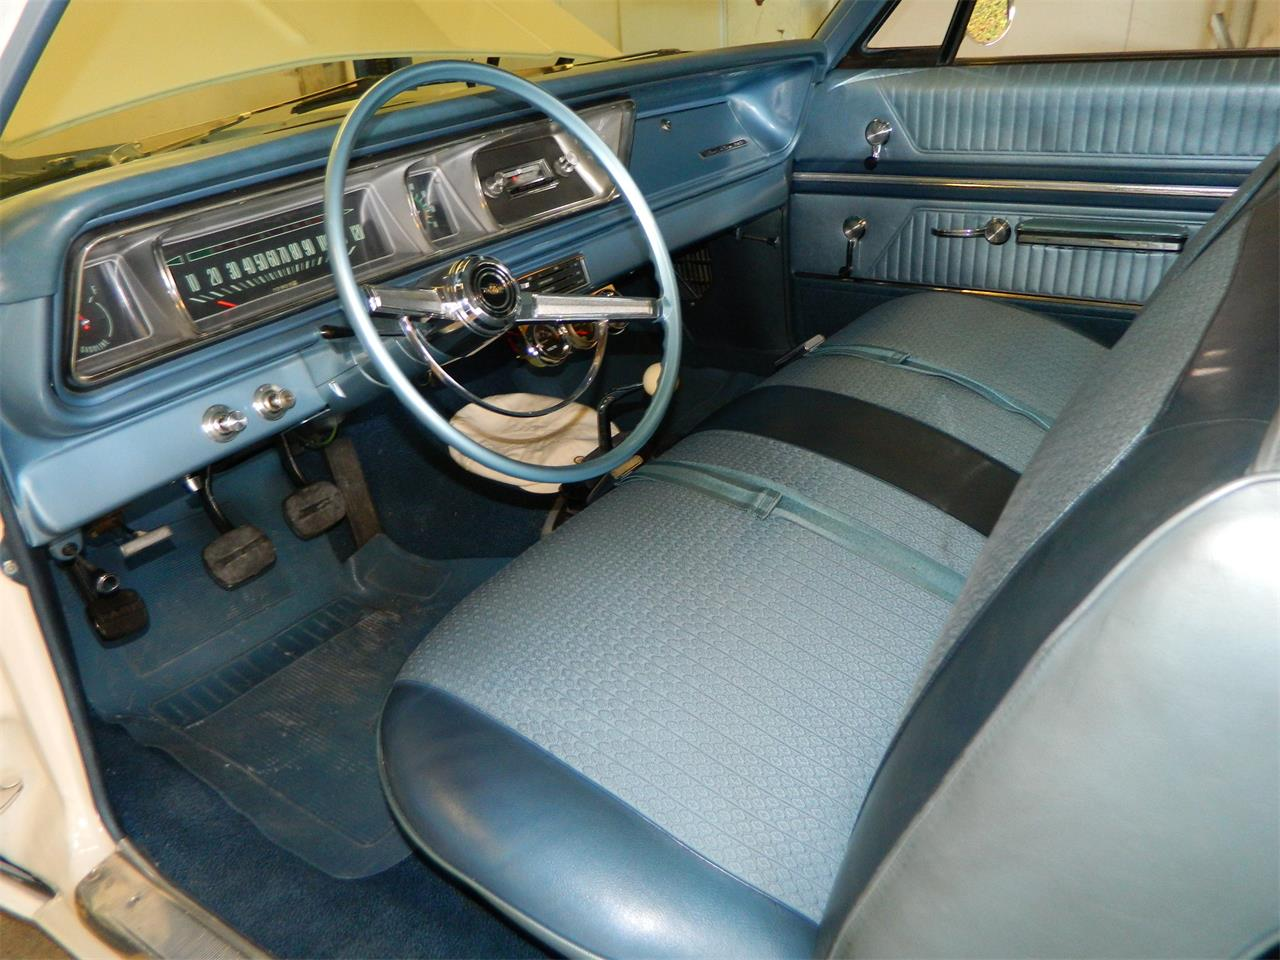 Large Picture of '66 Bel Air located in California - $55,000.00 Offered by Classic Car Marketing, Inc. - JBKE